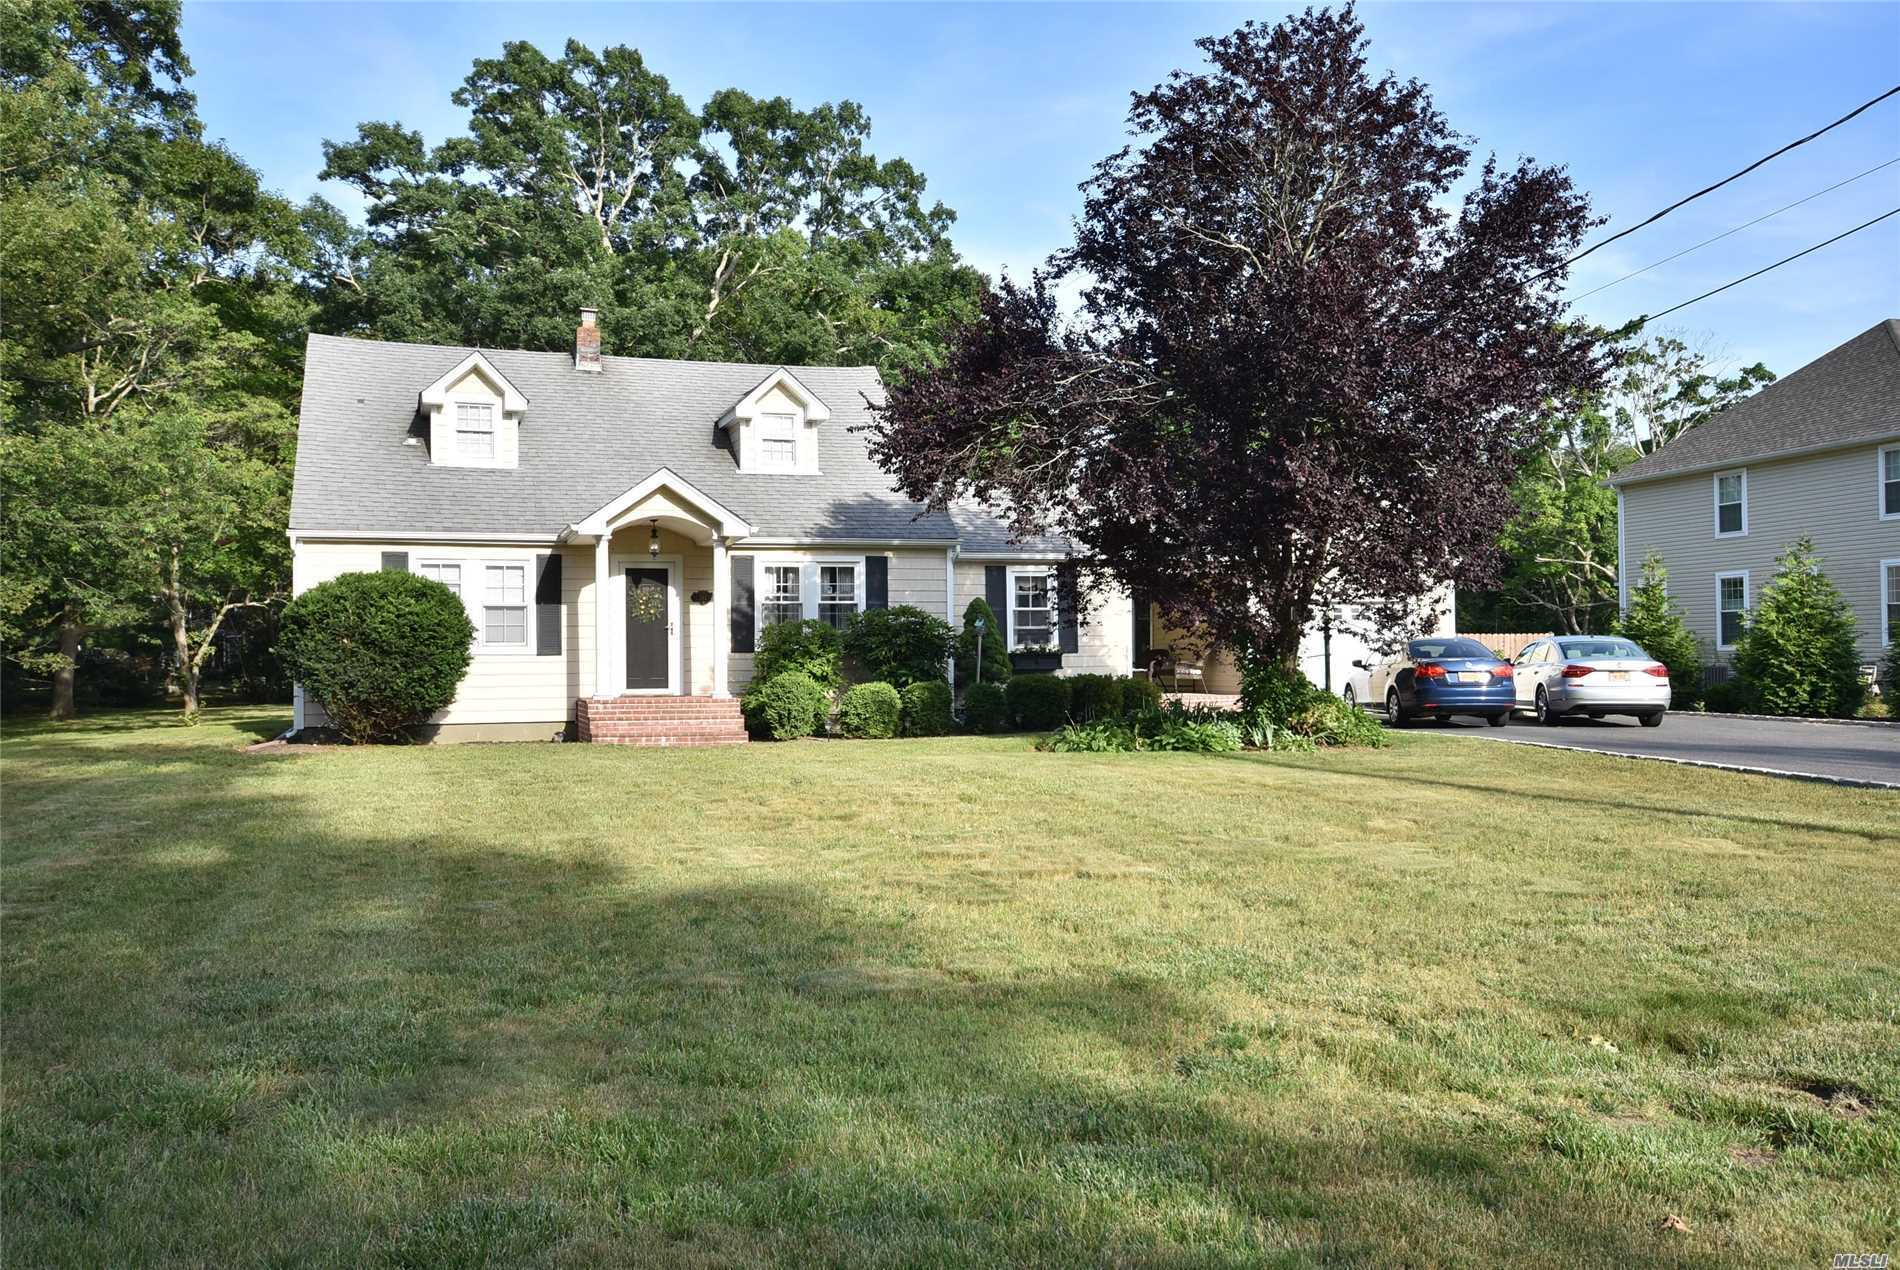 Photo of home for sale at 287 Mcconnell Ave, Bayport NY